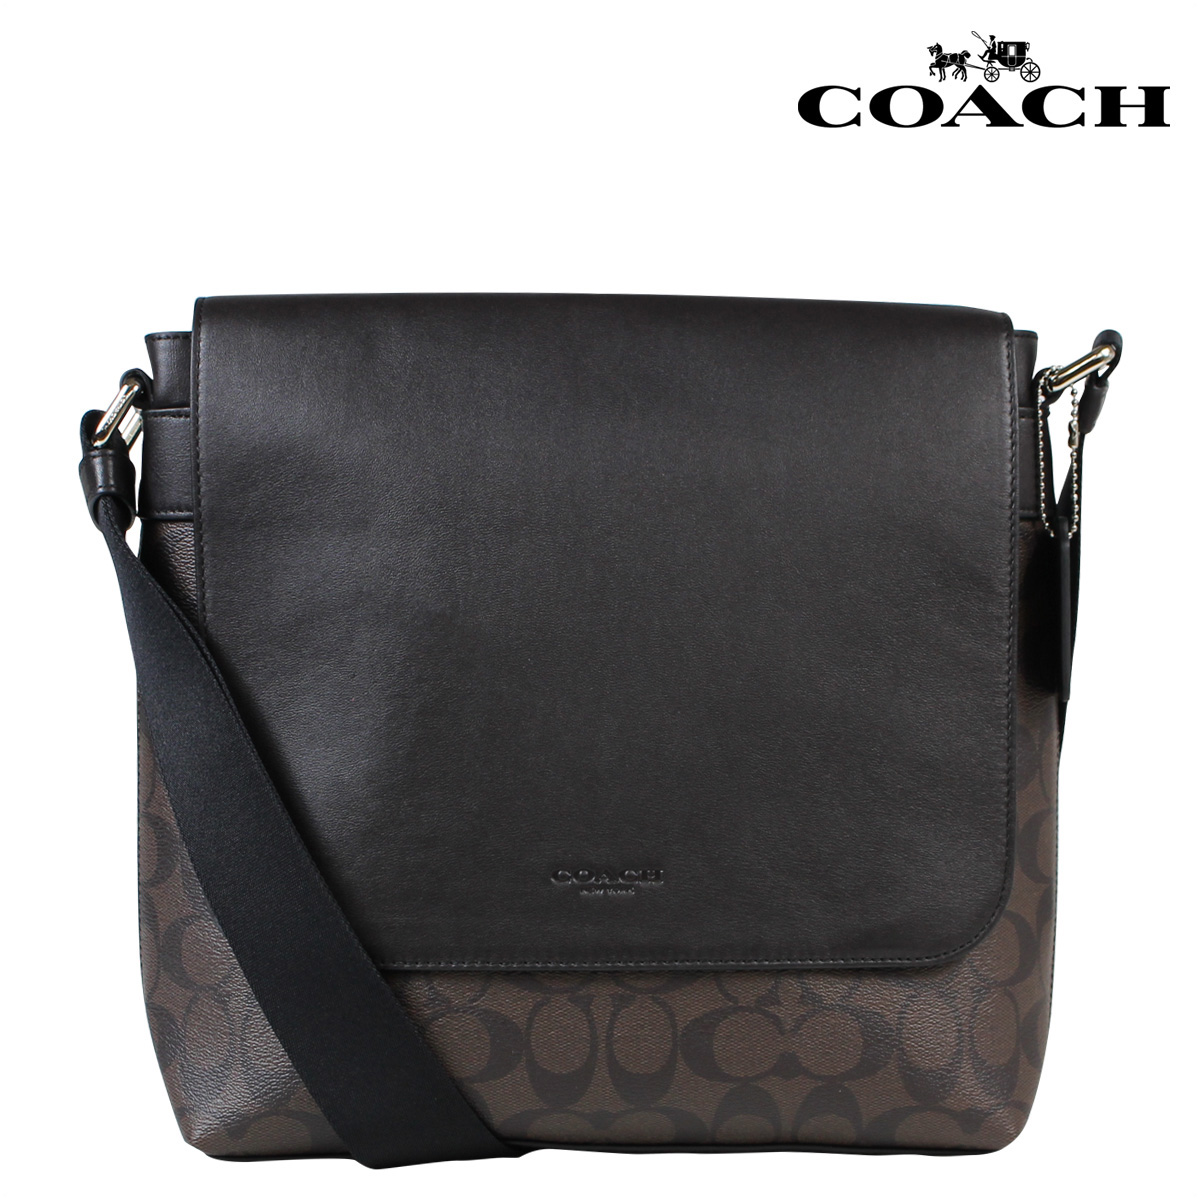 ... australia coach coach mens bags shoulder bag messenger bag 54771 mahogany  x brown 8bb4e cf516 e14331ee8b178